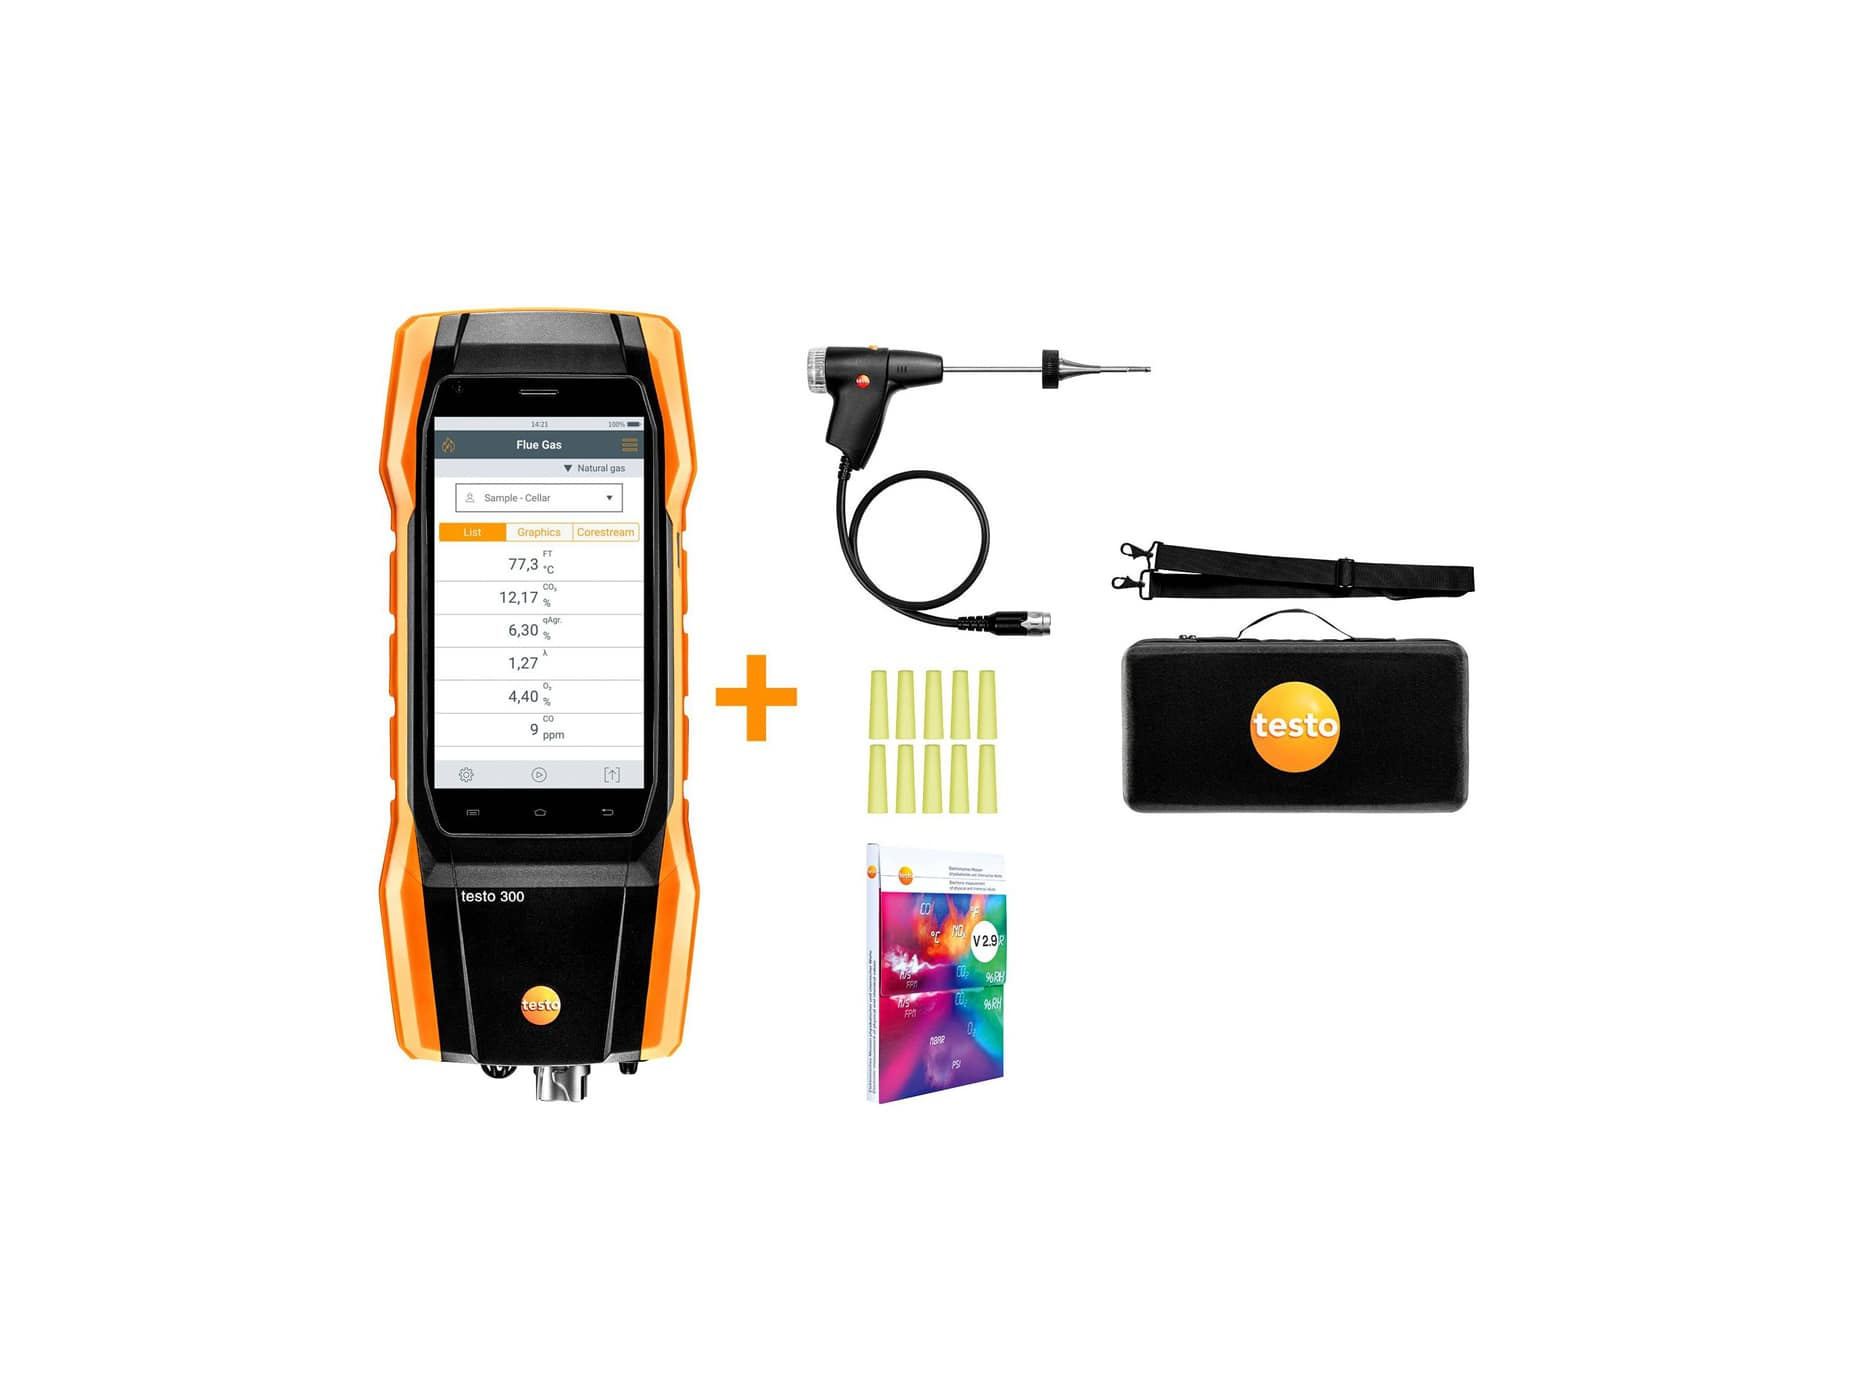 testo 300 kit 2 - flue gas analyzer (O2, CO H2-compensated up to 8,000 ppm)